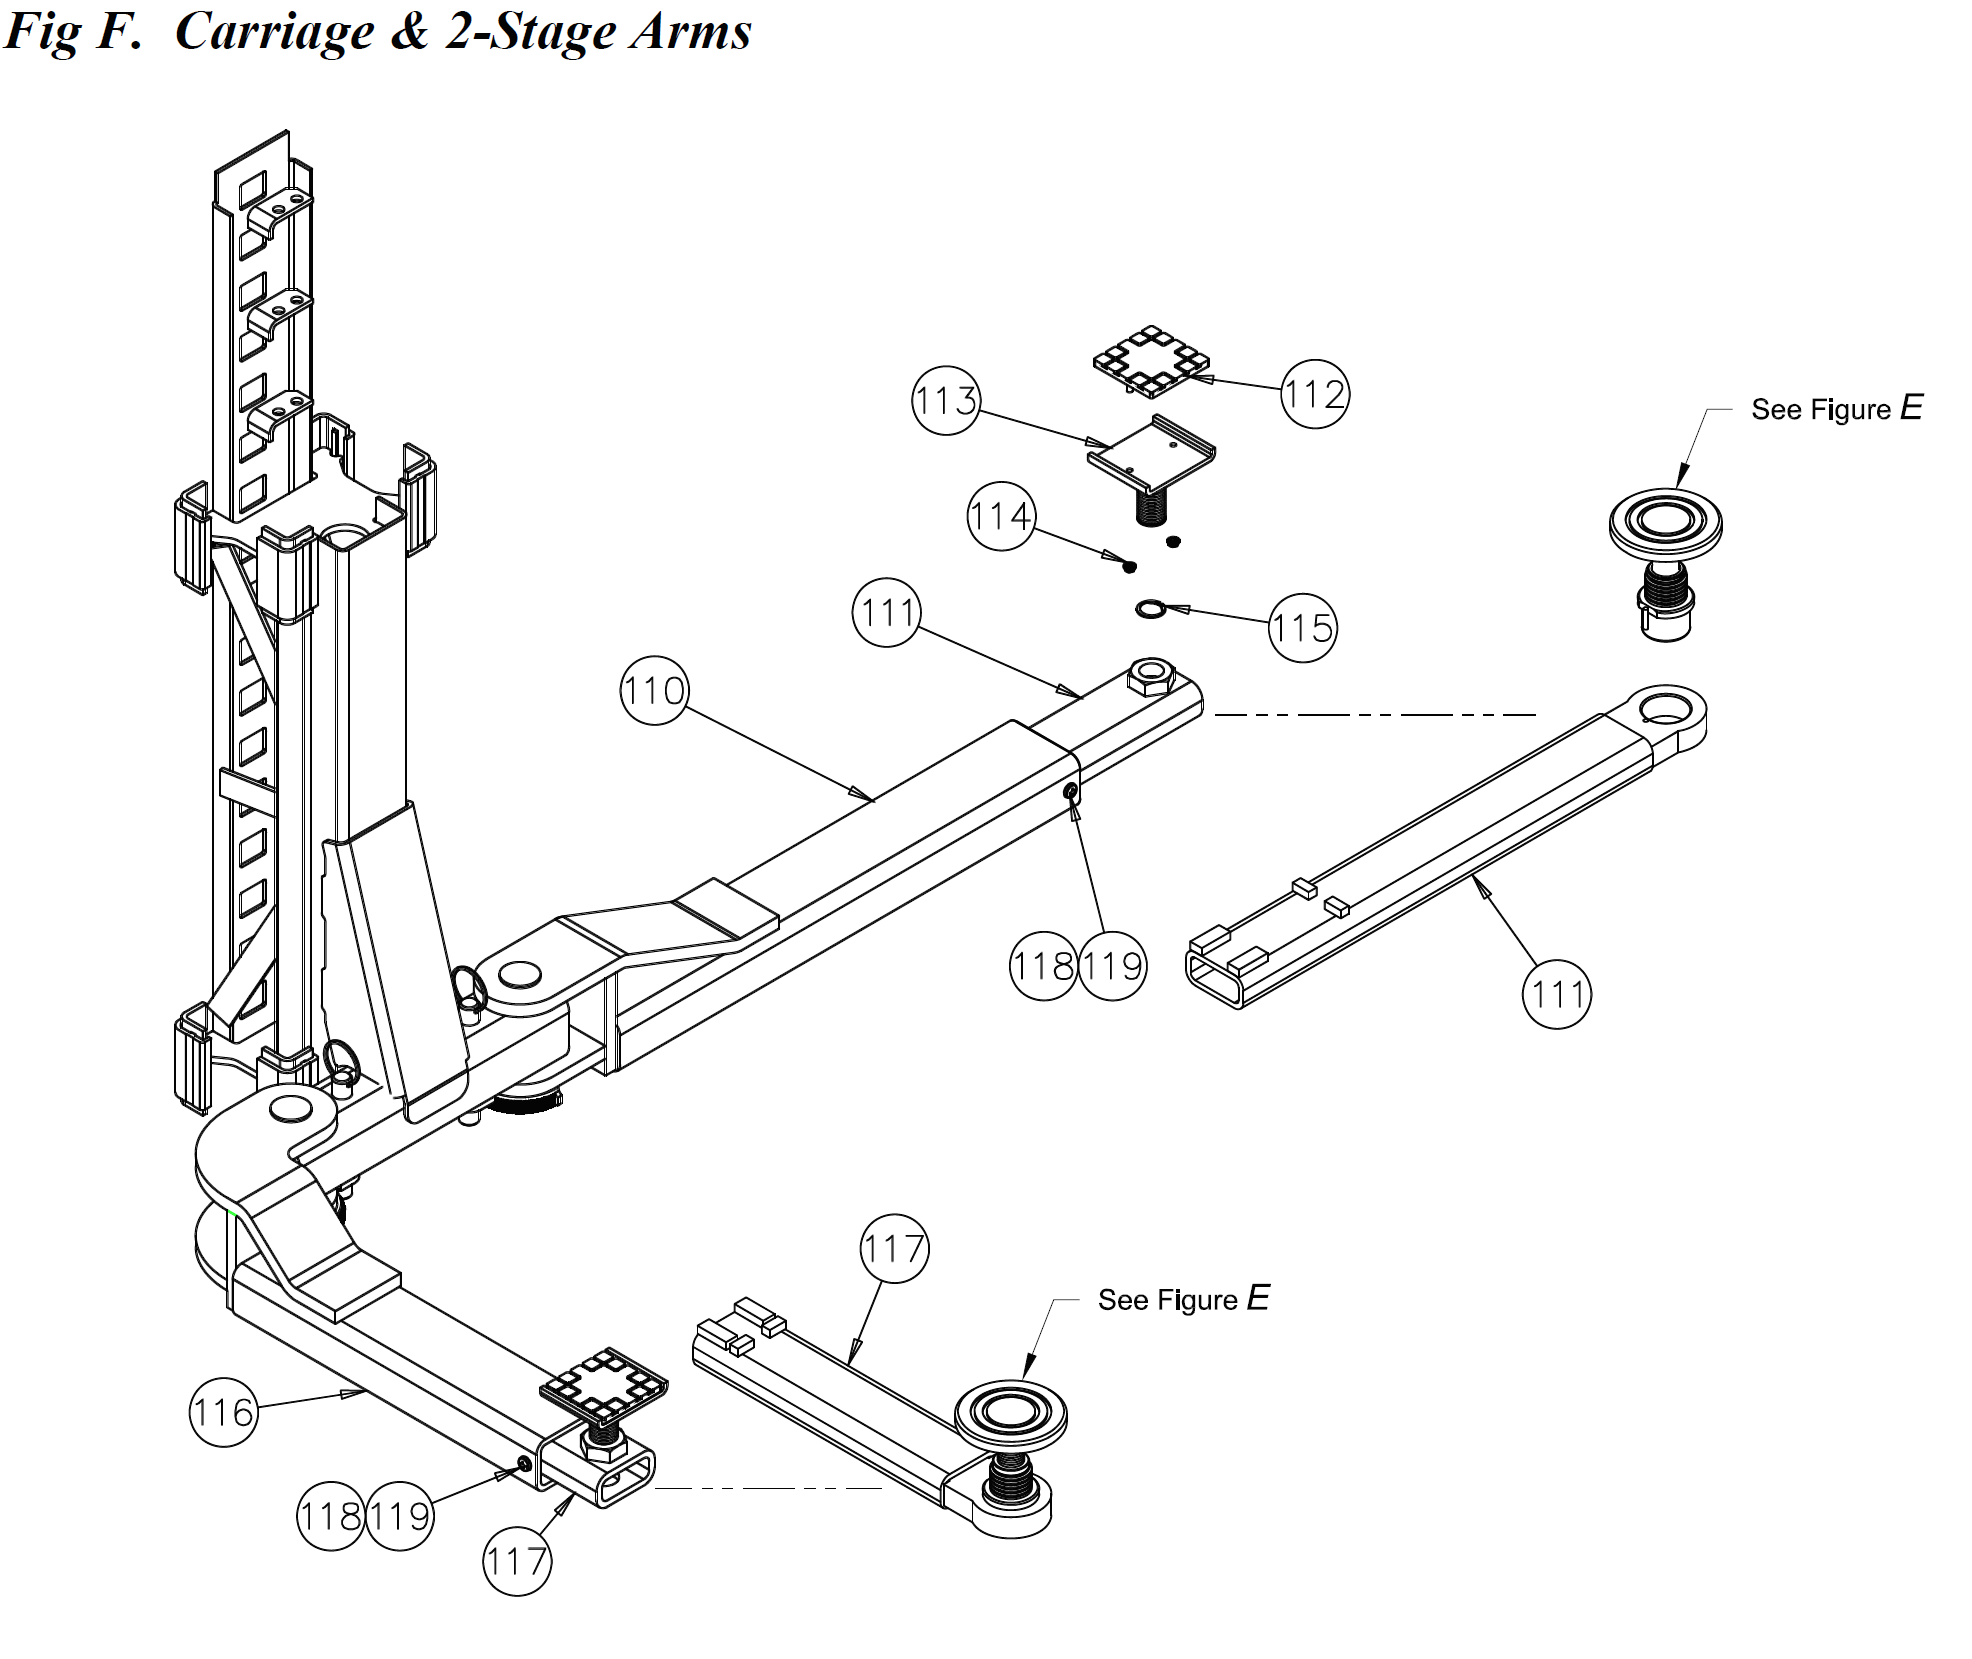 cl9-carriage-and-2-stage-arm-assembly.png